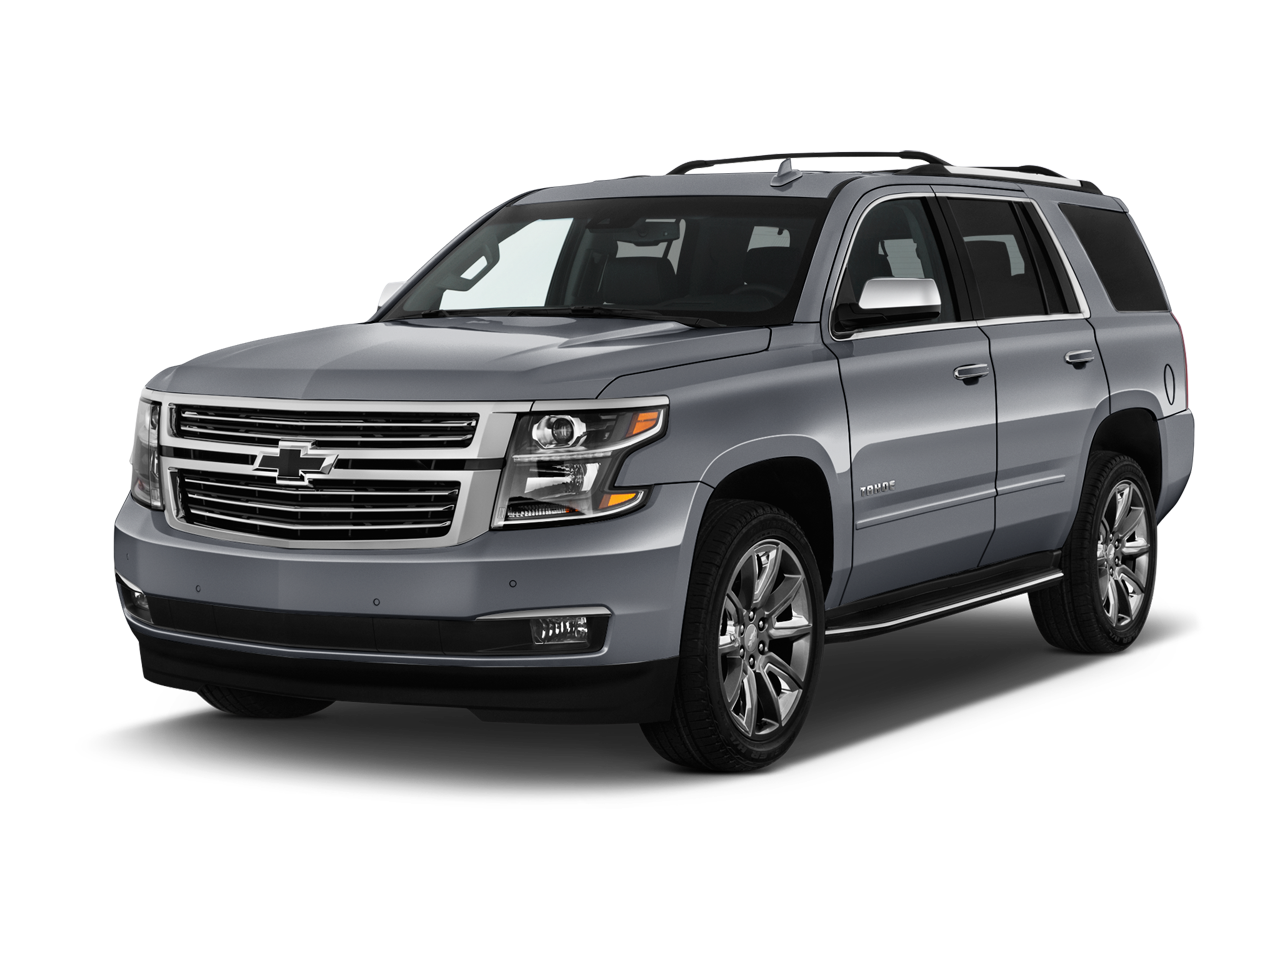 new 2018 chevrolet tahoe premier in oklahoma city ok. Black Bedroom Furniture Sets. Home Design Ideas